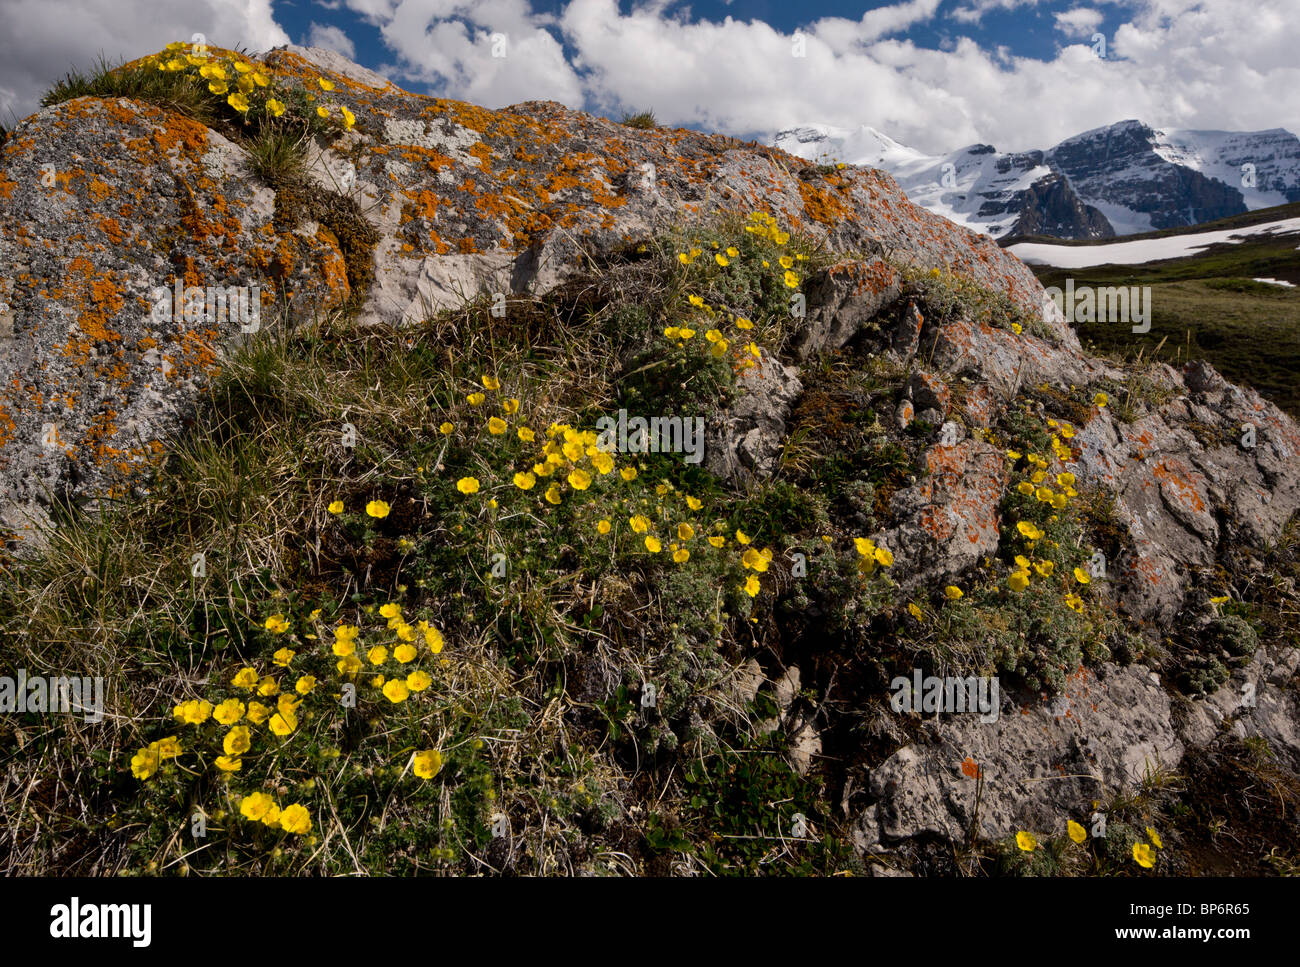 Snow-Cinquefoil, Potentilla nivea growing abundantly at high altitude, Wilcox Pass, Jasper NP, Rockies, Canada Stock Photo